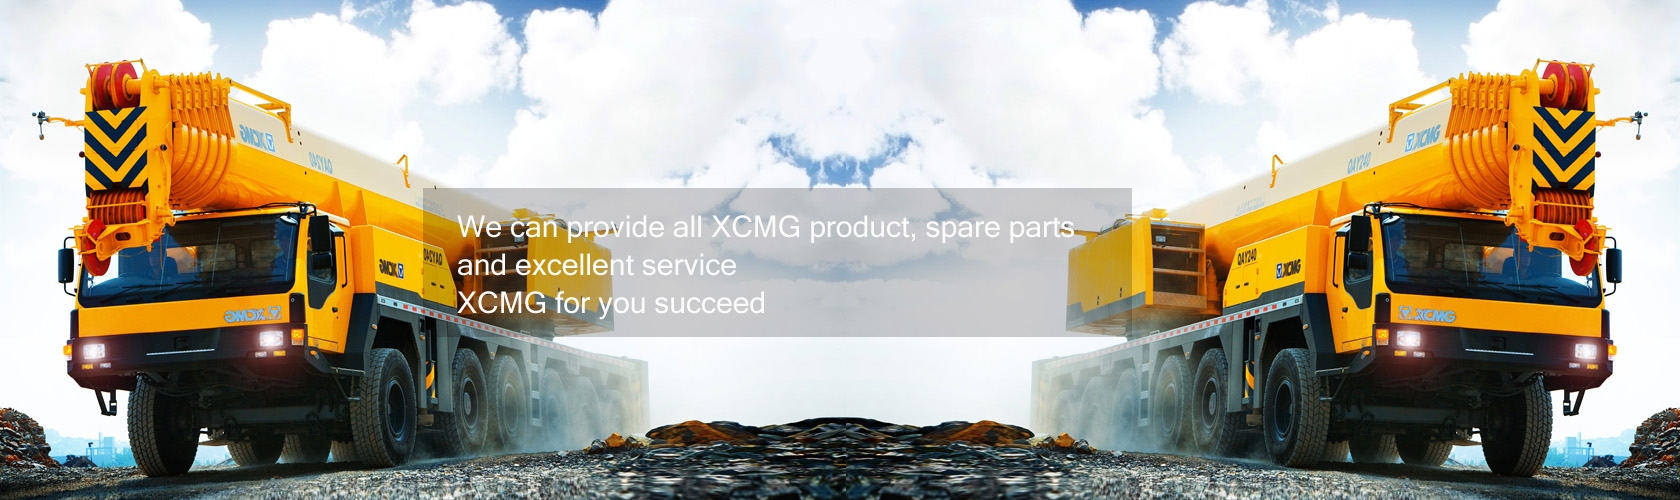 XCMG for your succeed